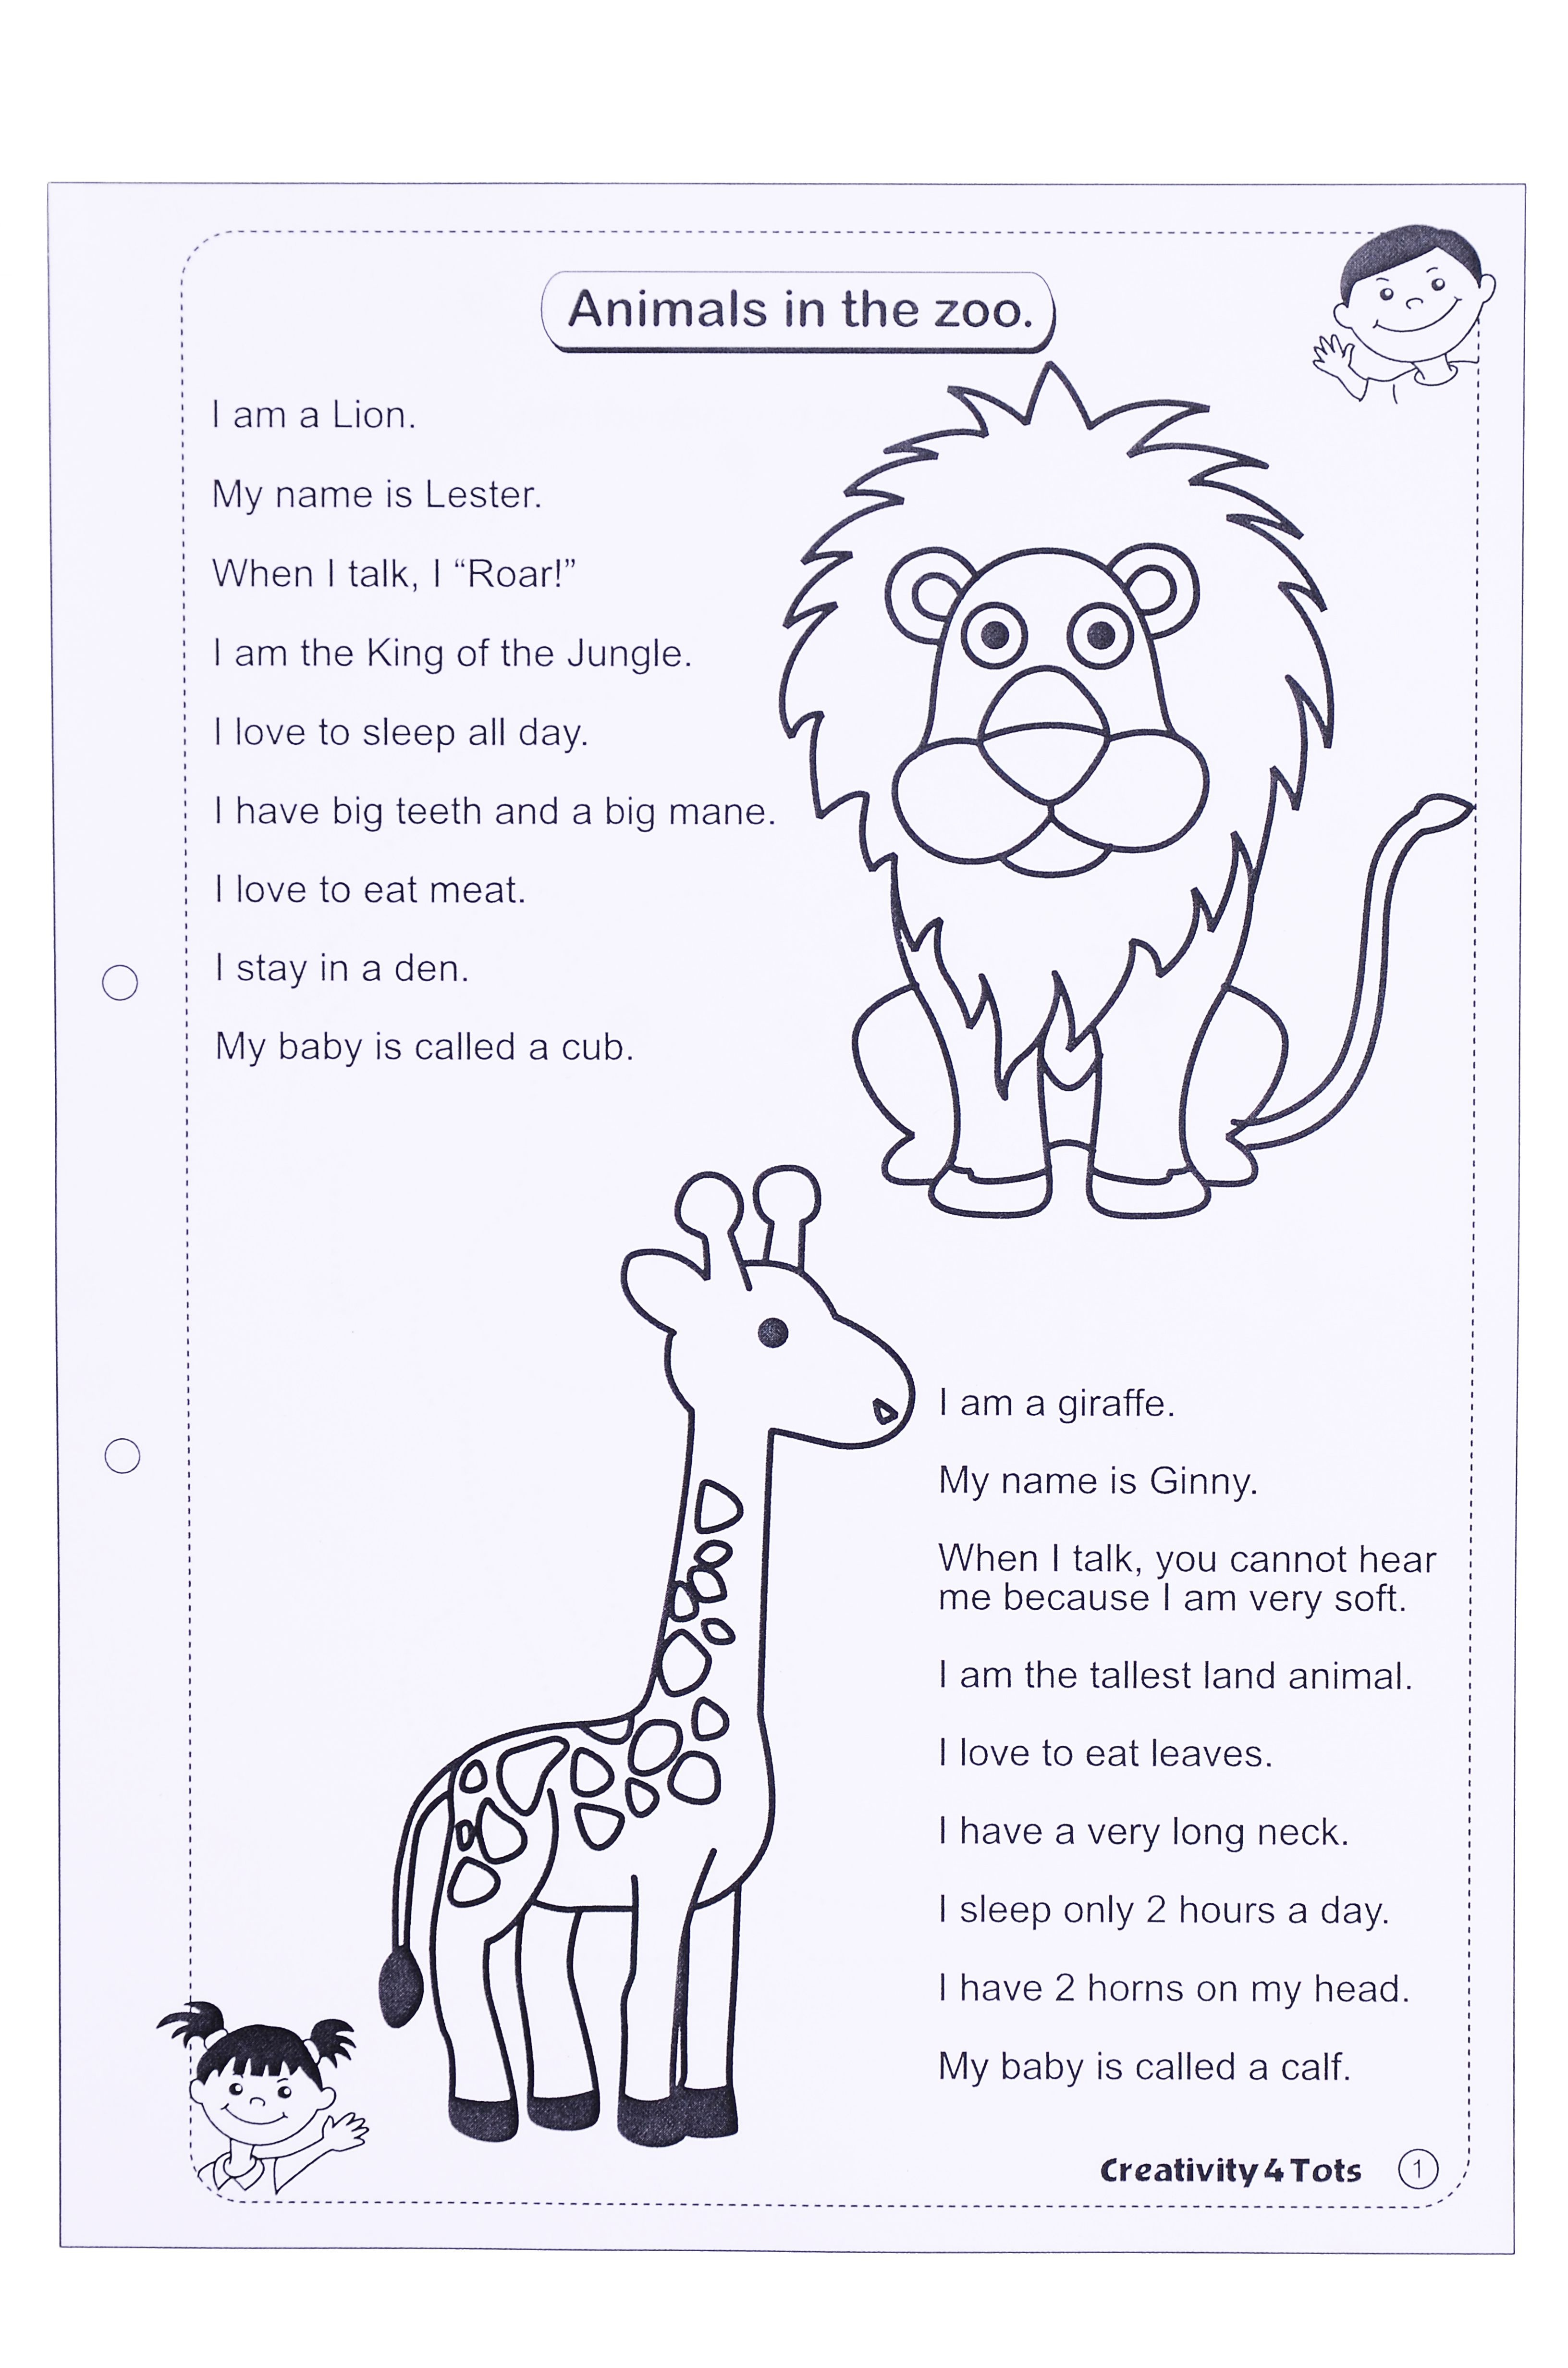 Zoo Animals Worksheet - This Worksheet Is Designed To Teach The - Free Printable Zoo Worksheets